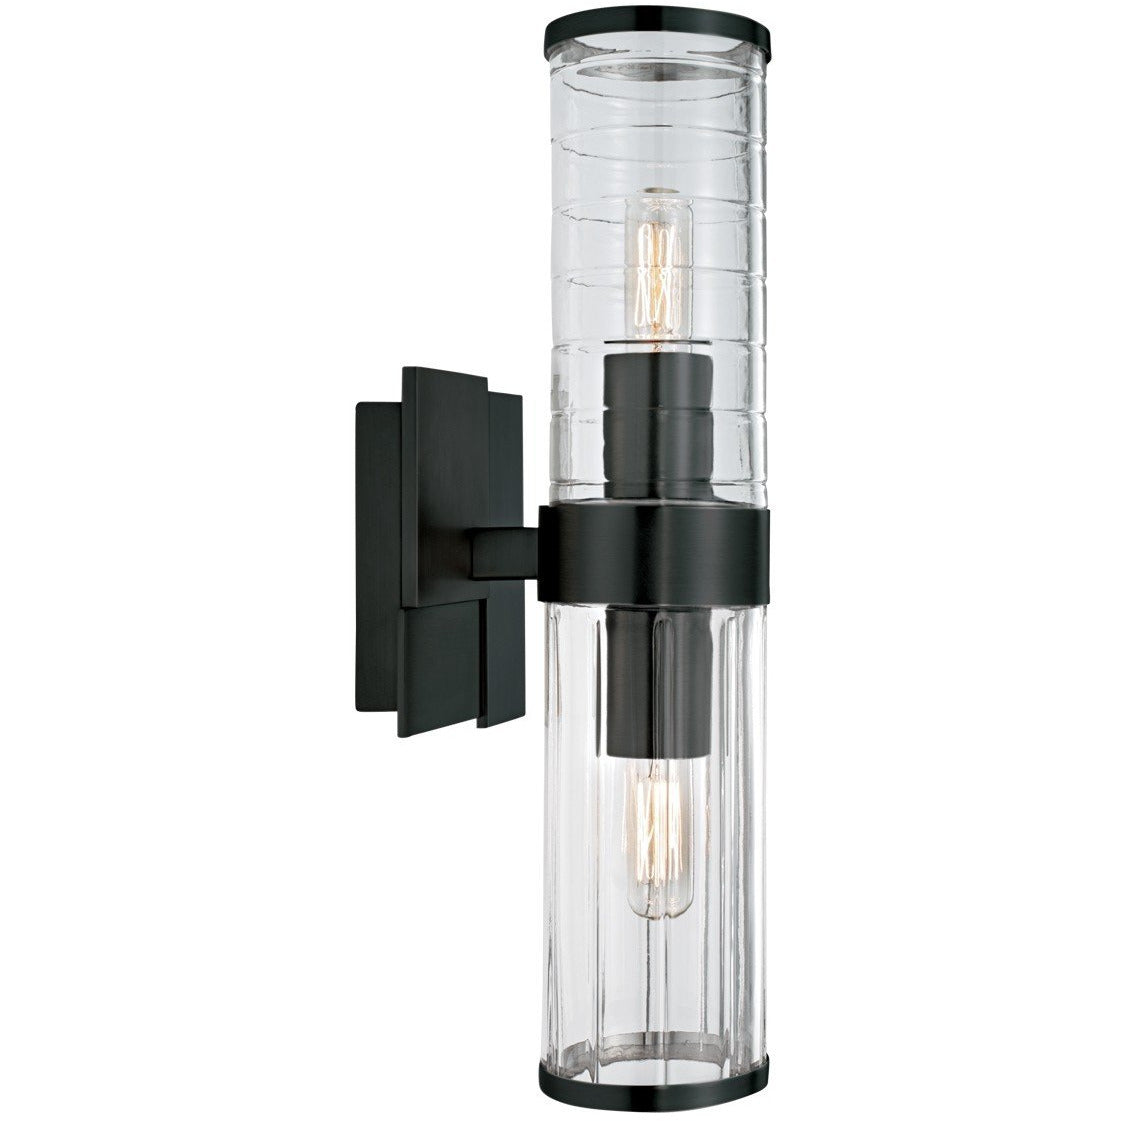 Norwell Lighting - 8149-MB-CL - Two Light Wall Sconce - Stripe - Matte Black